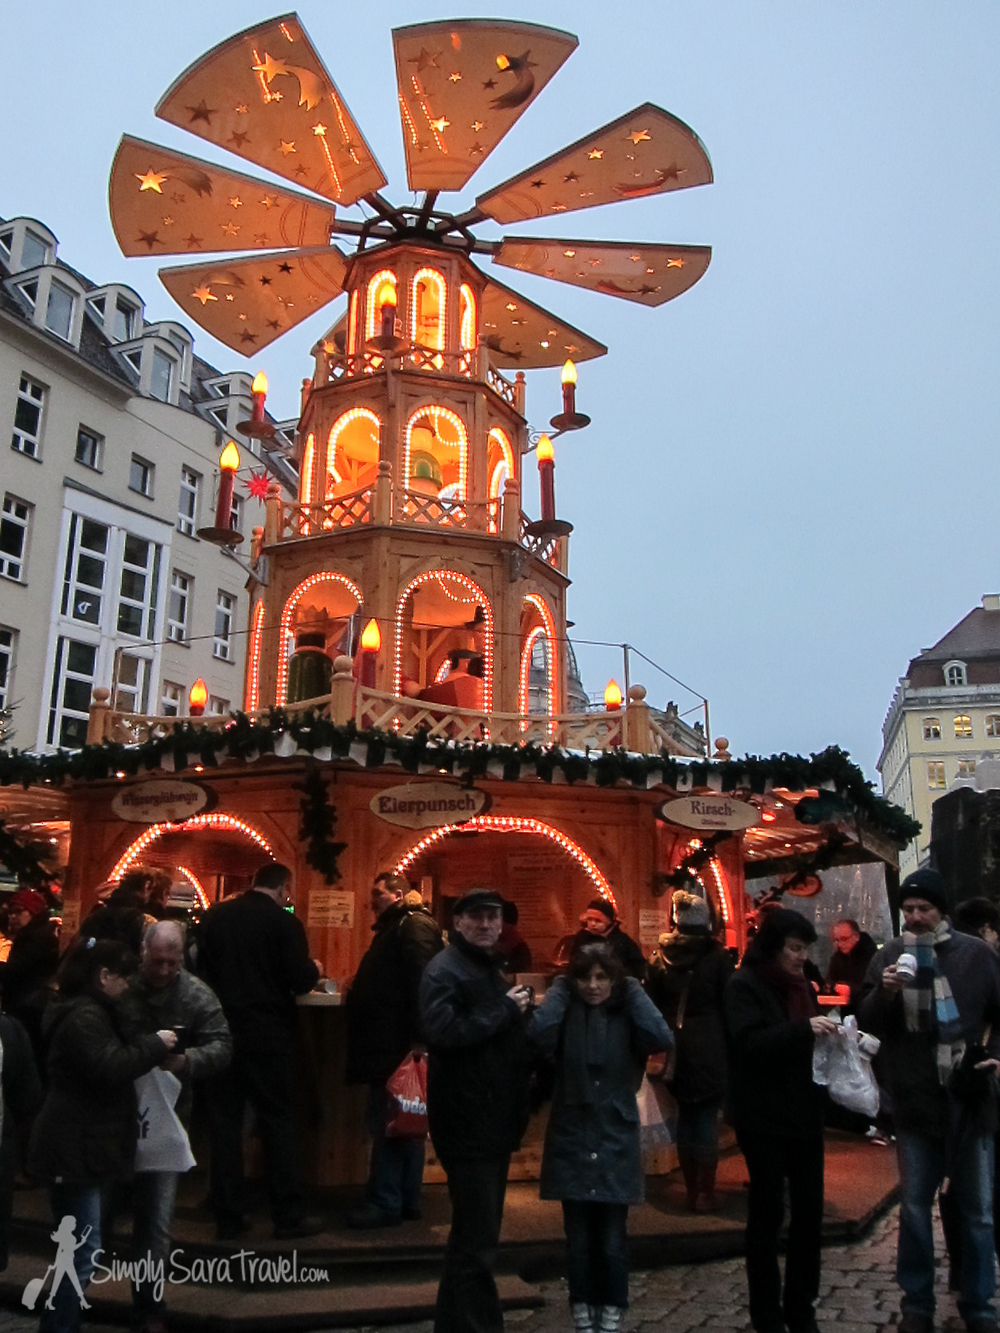 Yea, I had to take a cheap shot with X. But seriously, there are lots of extra people coming to Dresden to visit this very old Christmas market - 2013 marks the Striezelmarkt's 579th year! The market entices 2.5 million visitors annually!